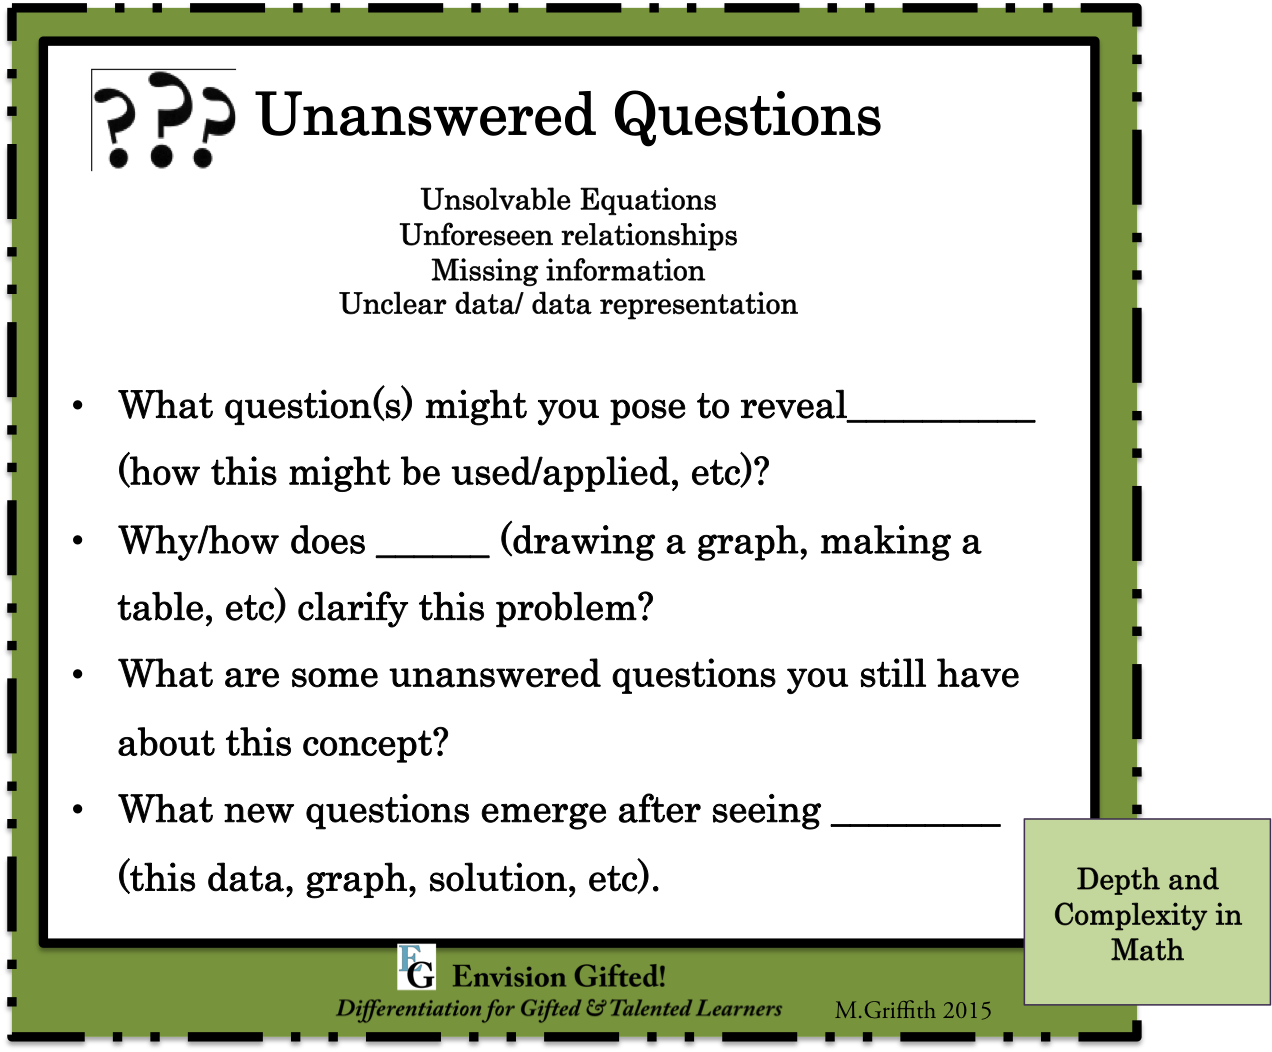 medium resolution of Envision Gifted. Depth and Complexity in Math Unanswered Questions   Math